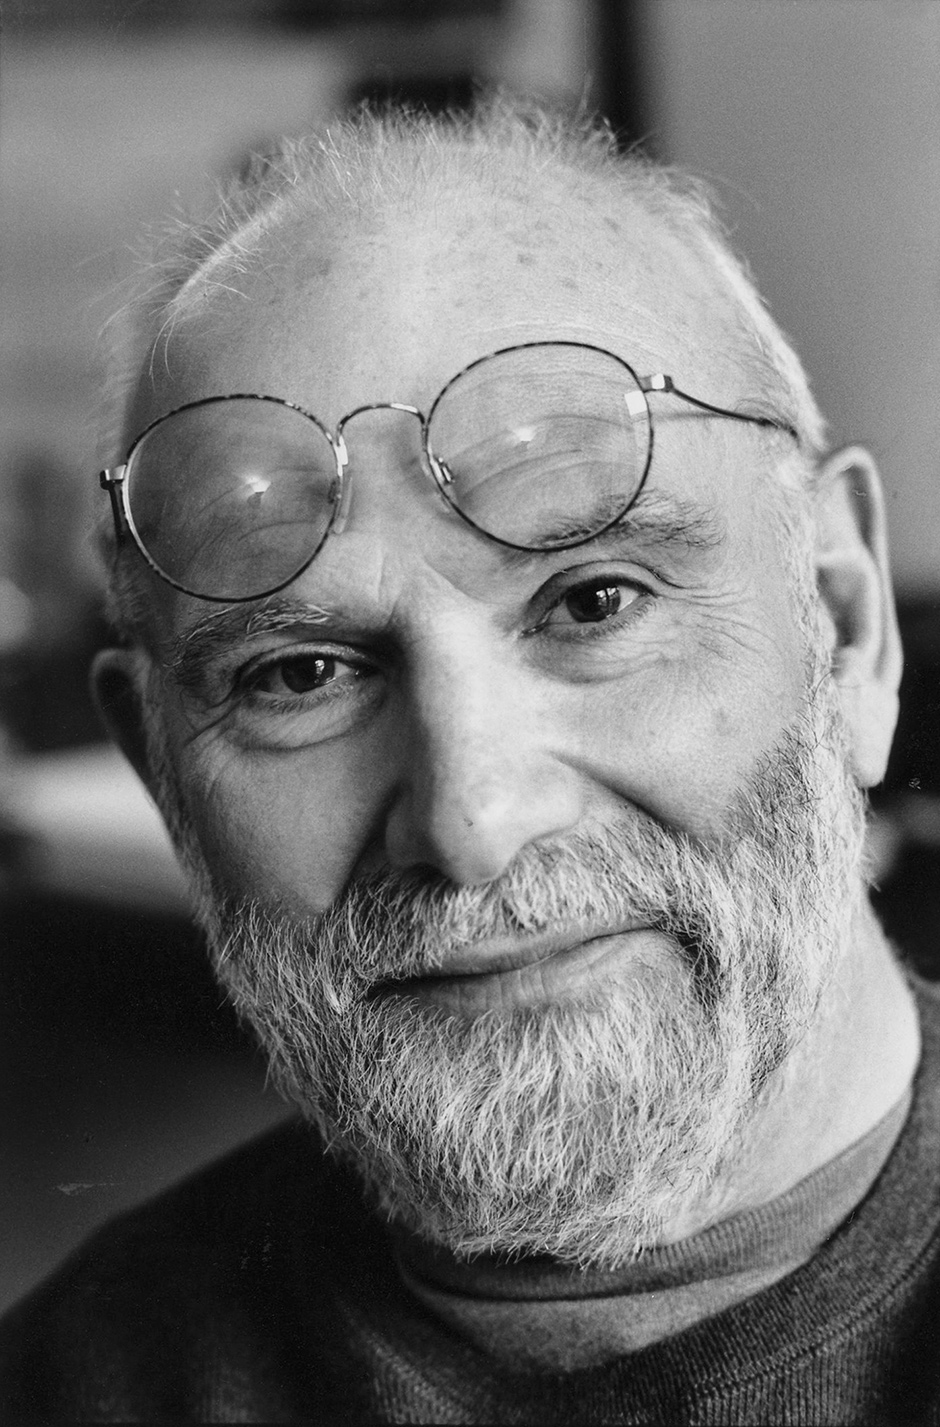 Oliver sacks research papers